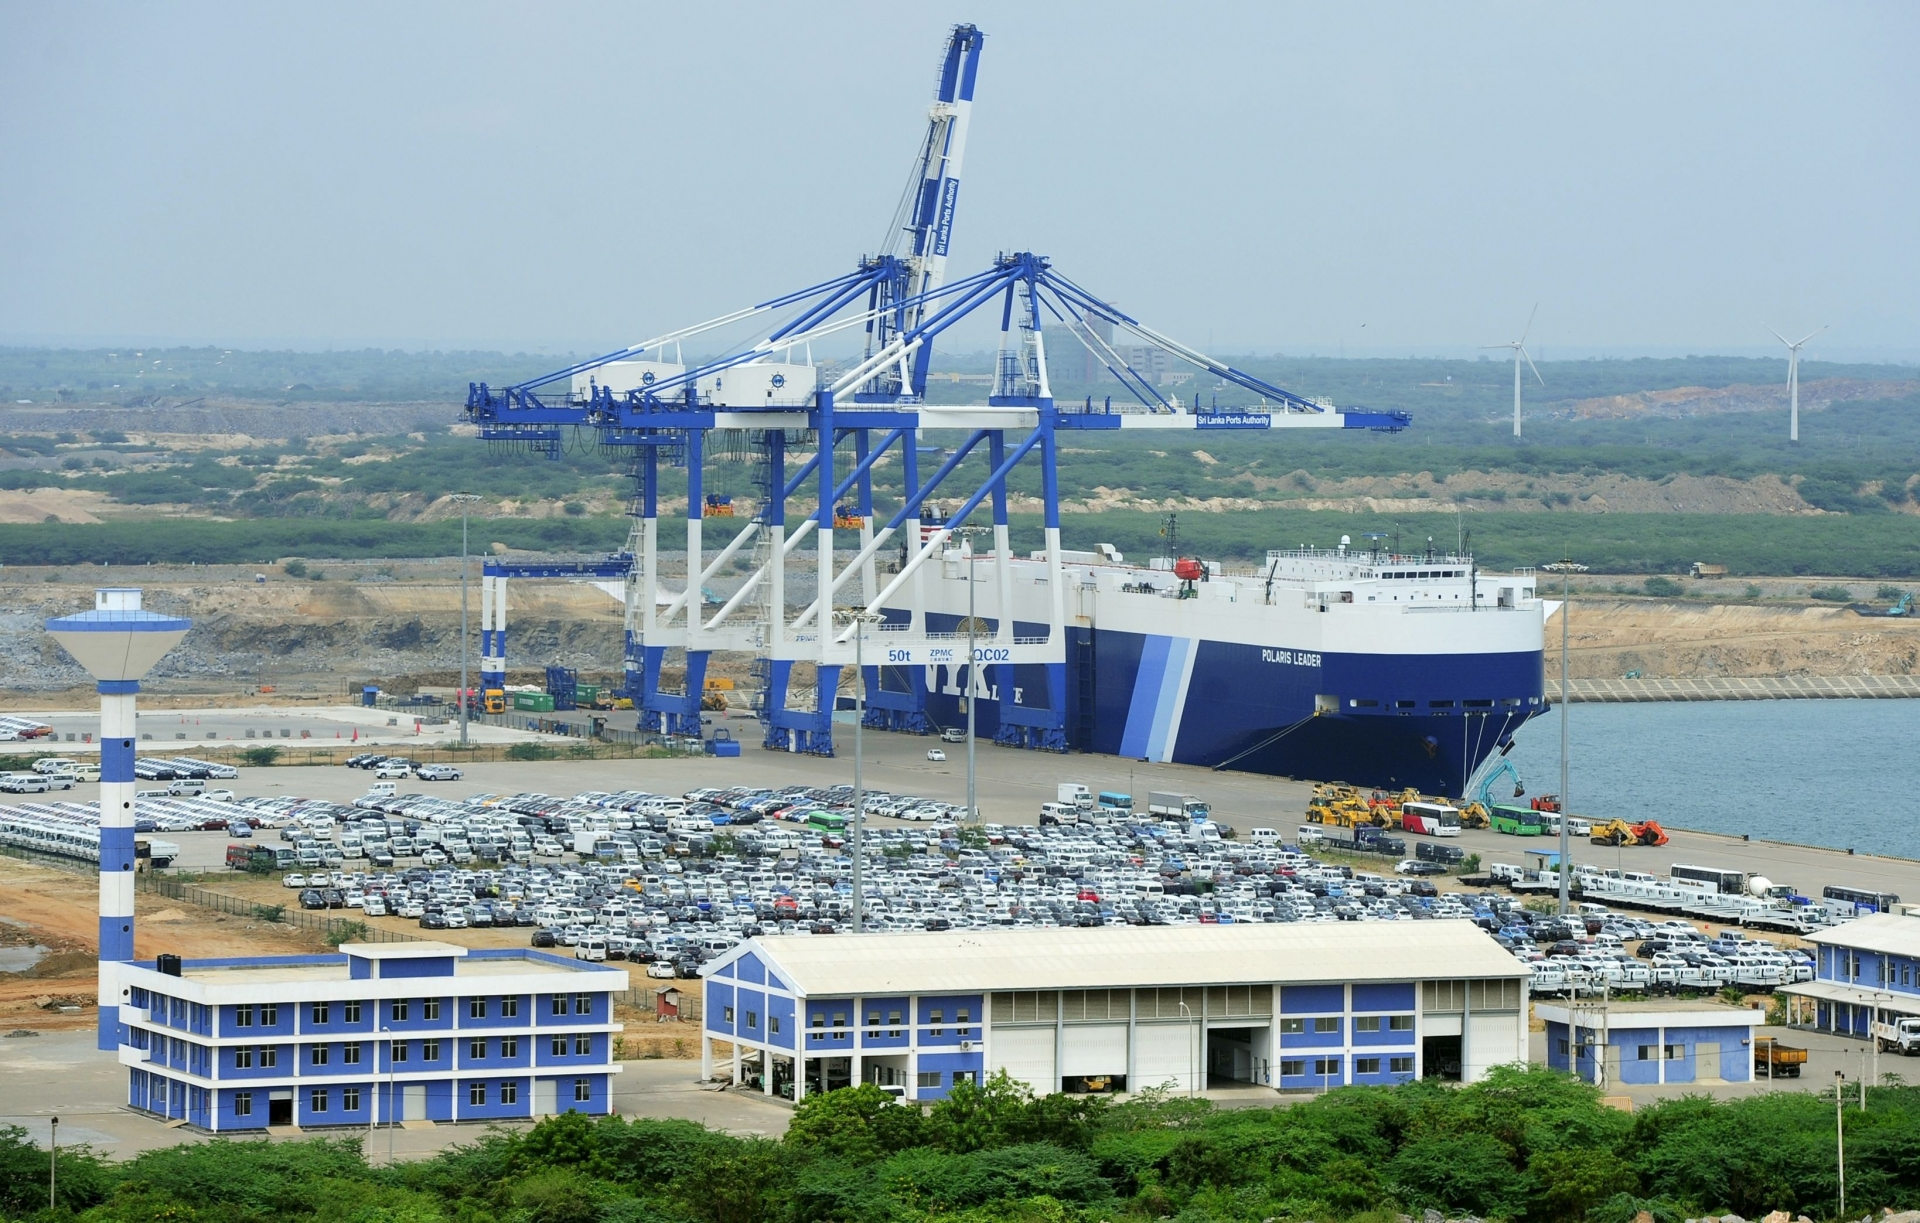 Sri Lanka delegated the authority to operate a deep-water port in the Indian Ocean to the Chinese company in 2017